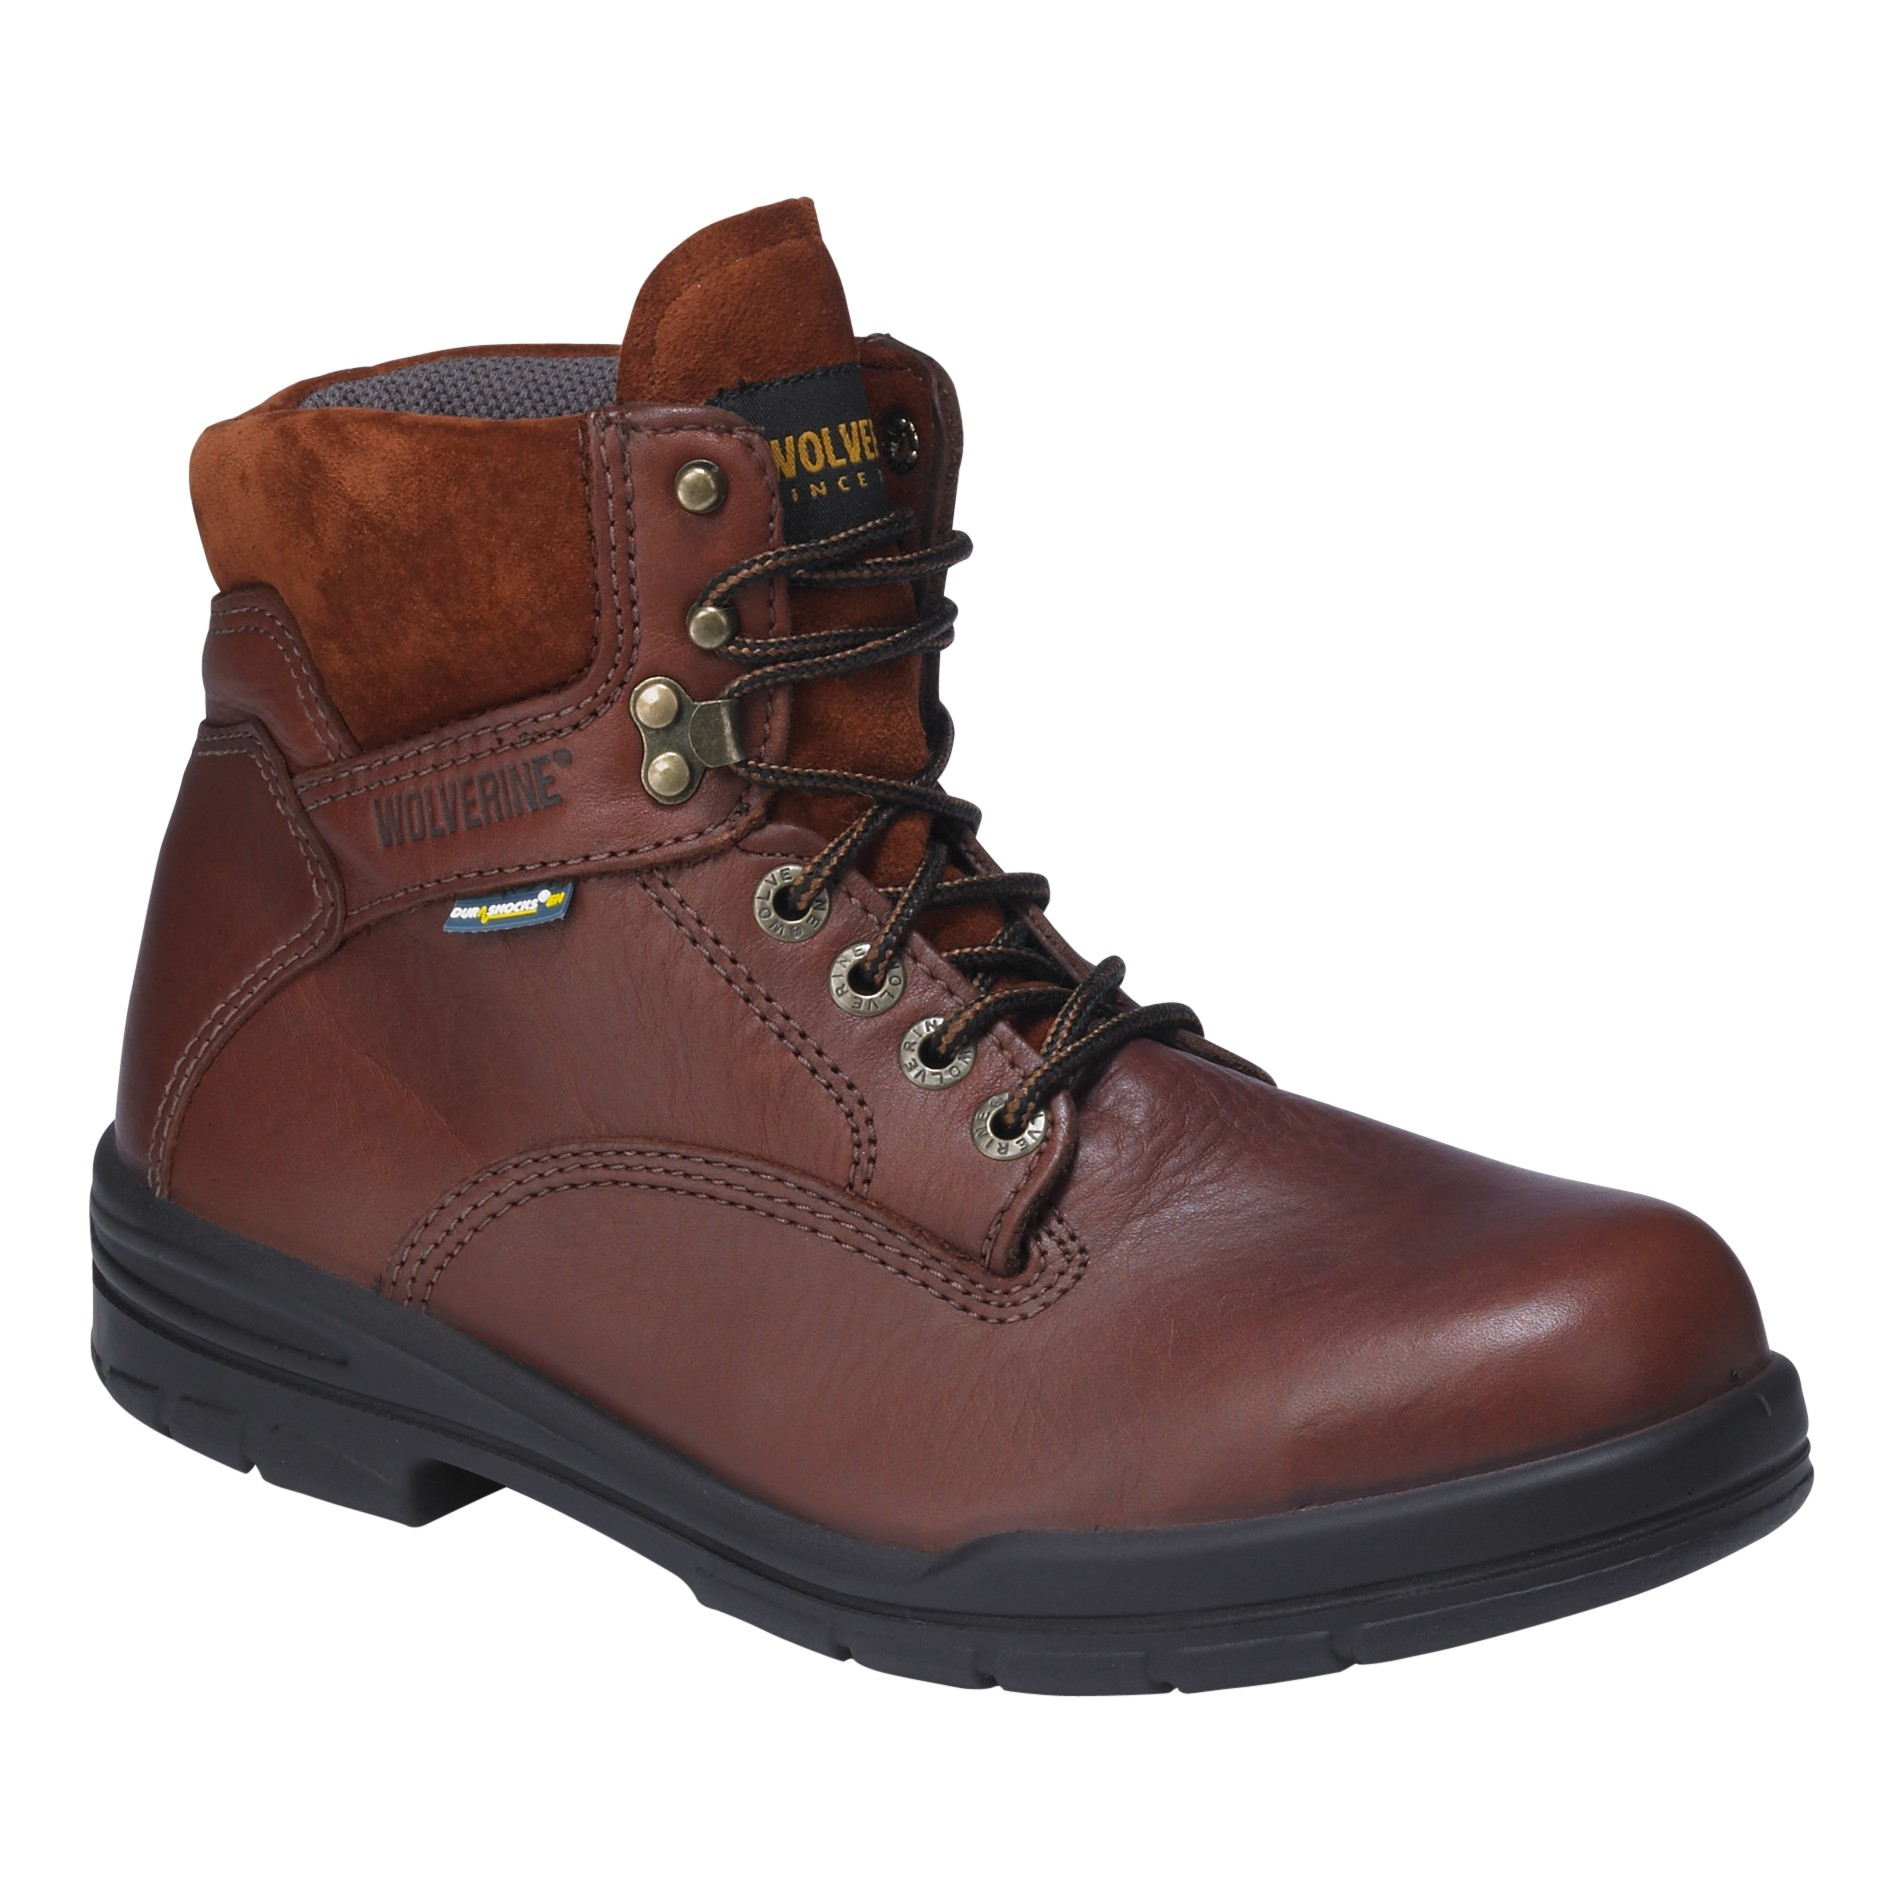 Where To Buy Work Boots Near Me - Boot Yc